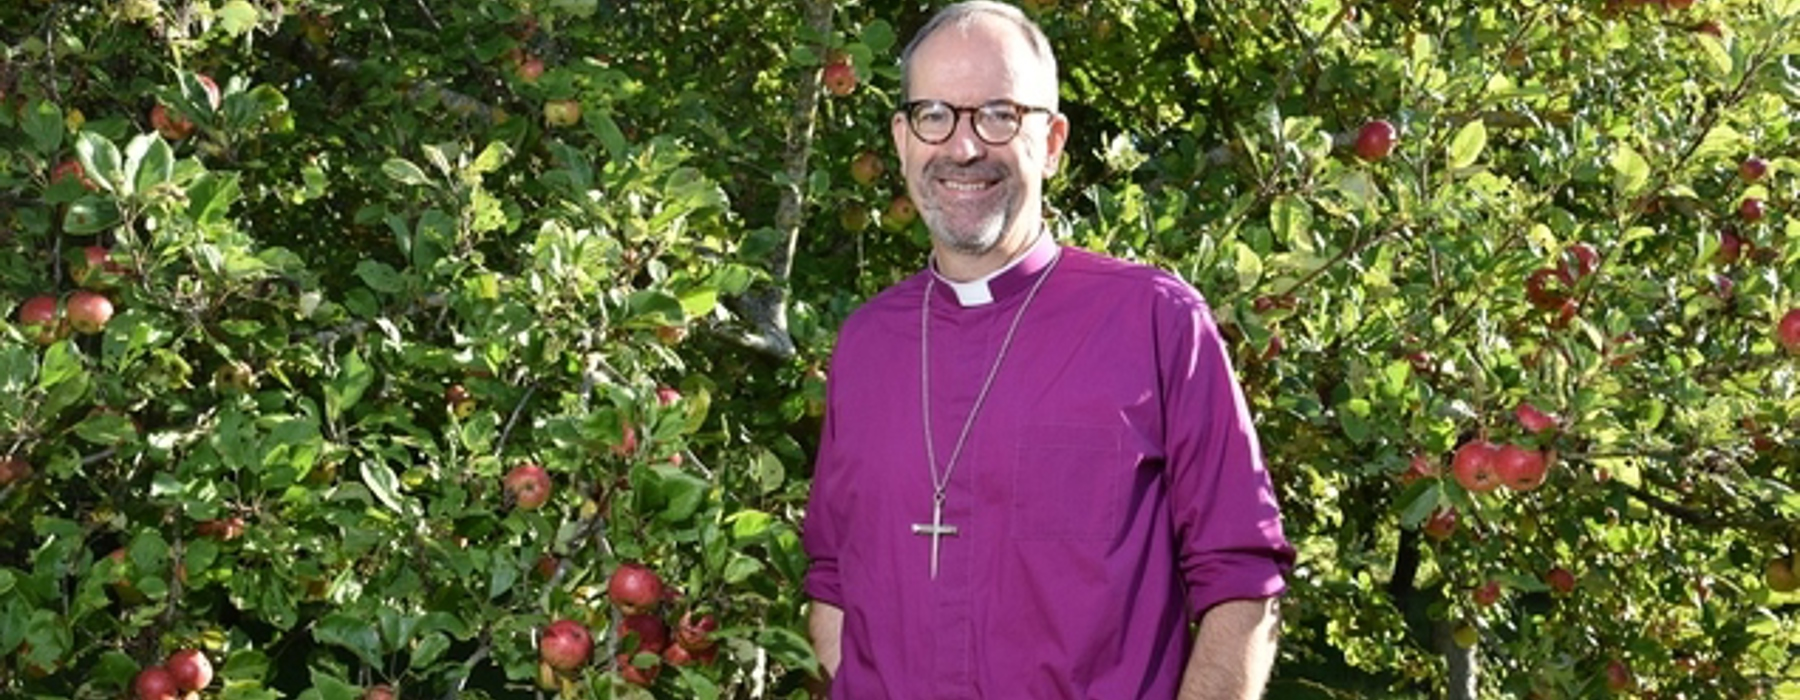 New Bishop of Hereford